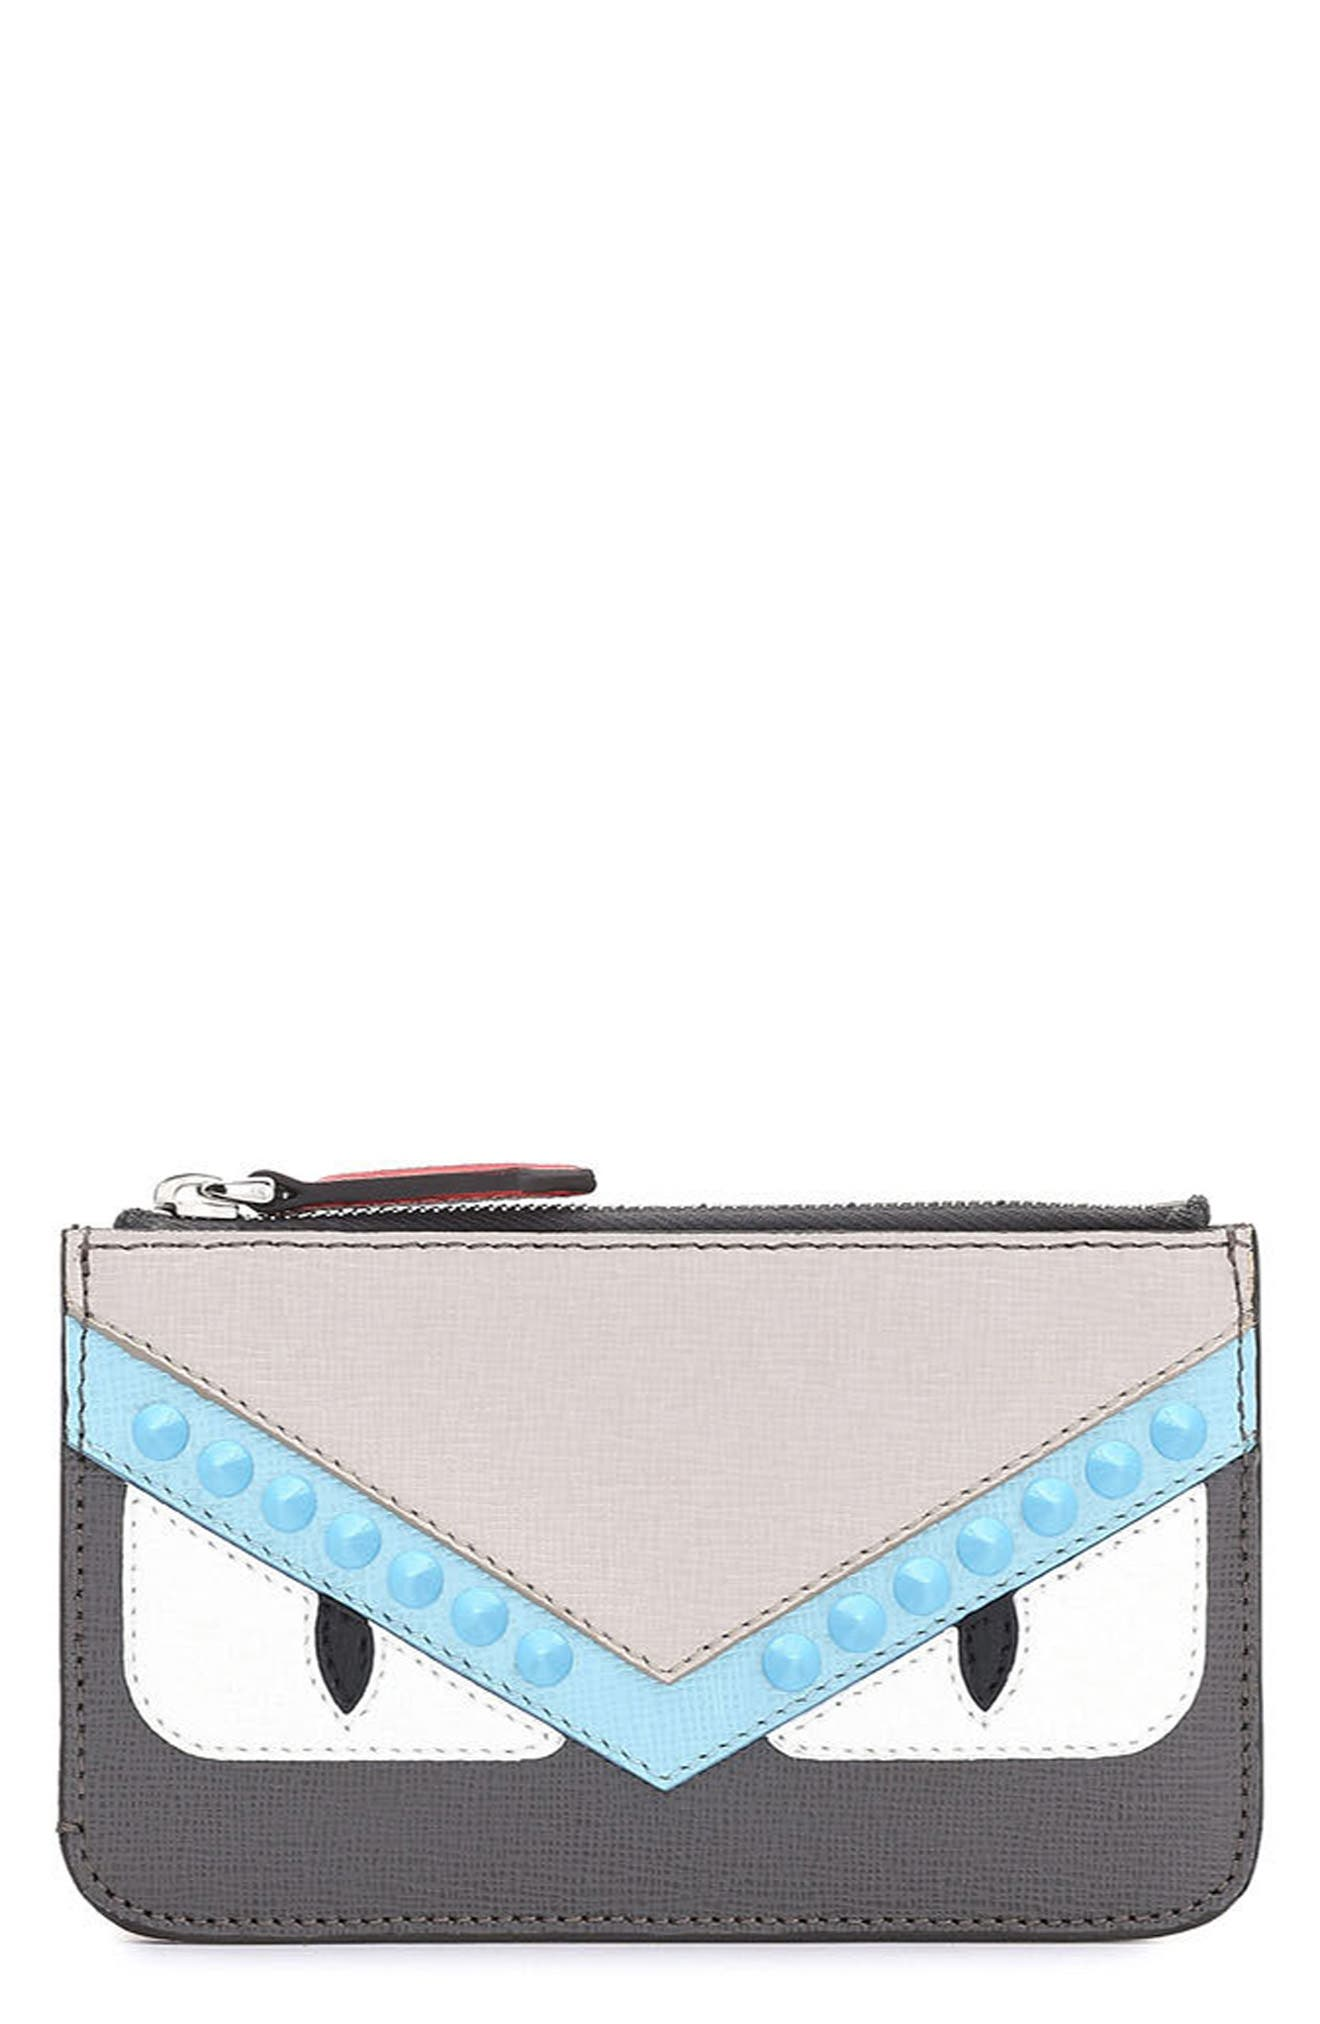 Fendi Monster Vitello Elite Leather Key Case